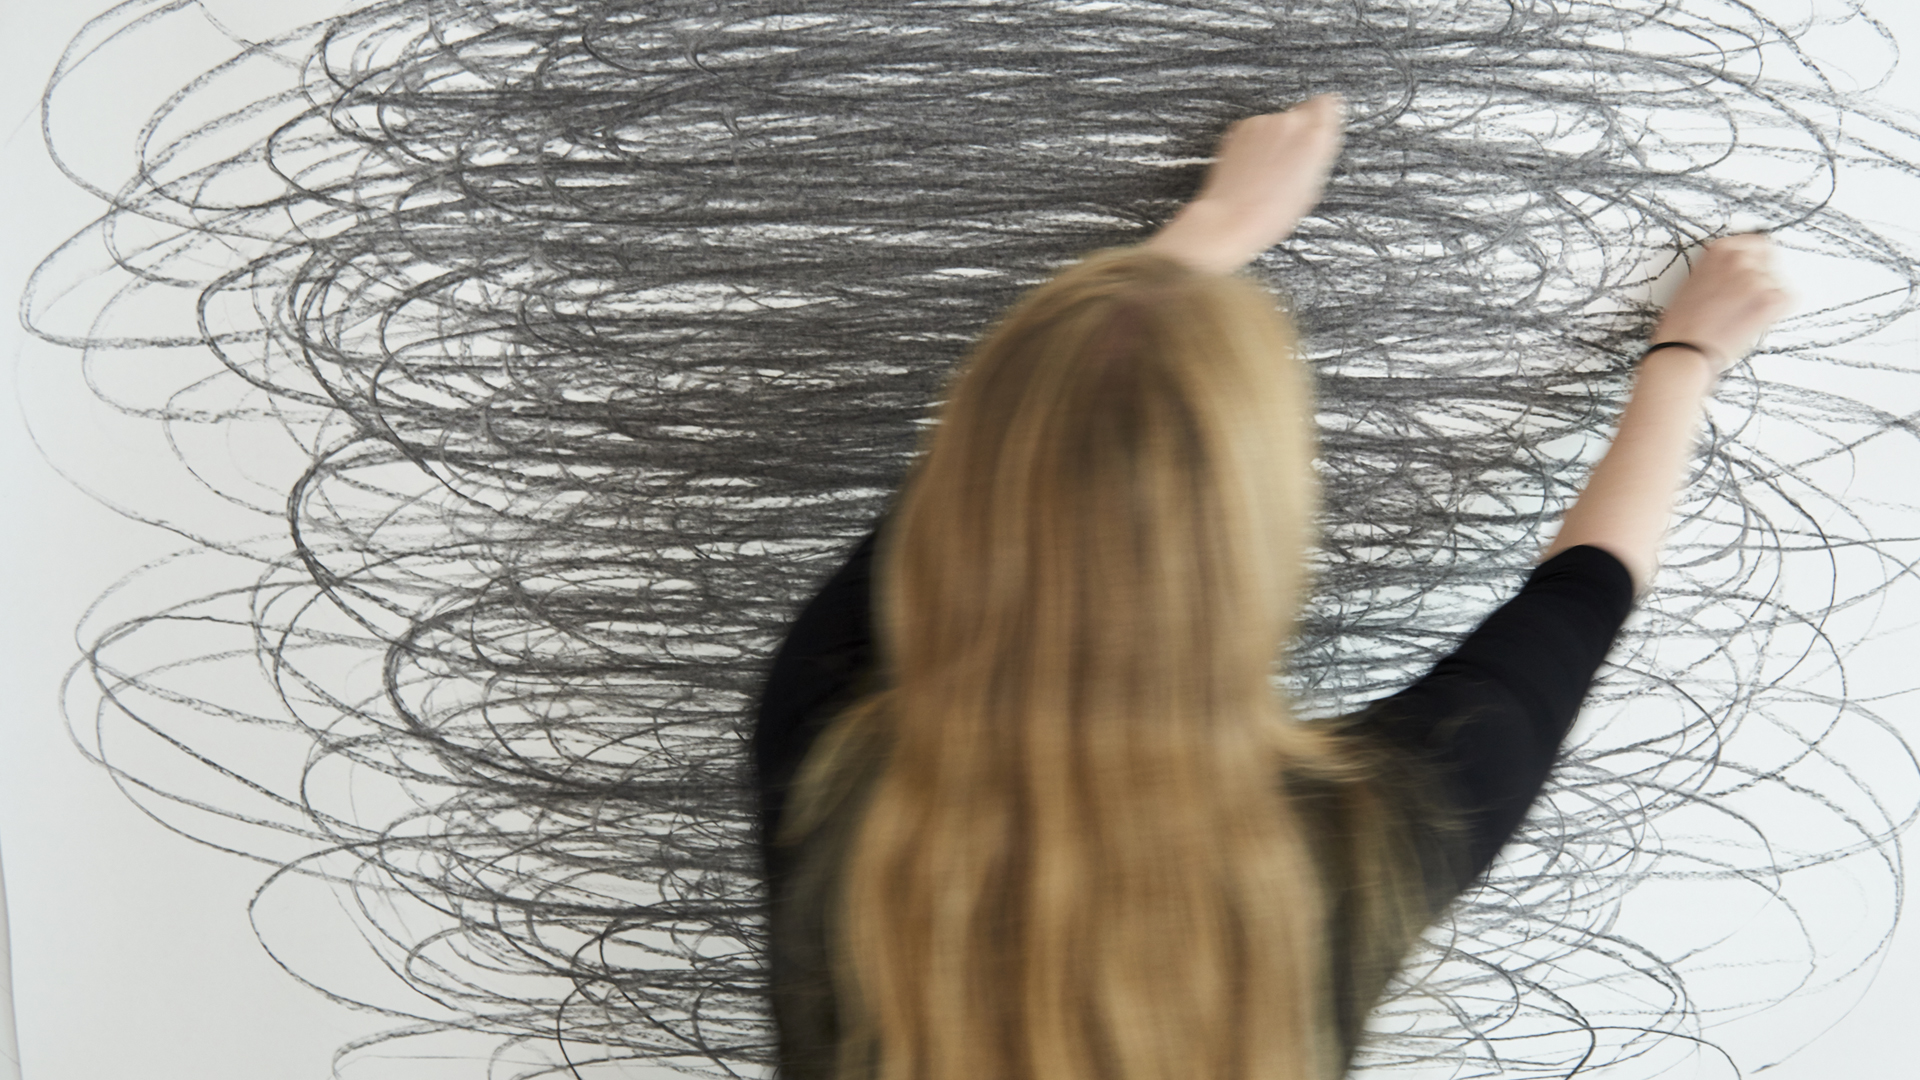 A student making a drawing on a white surface.